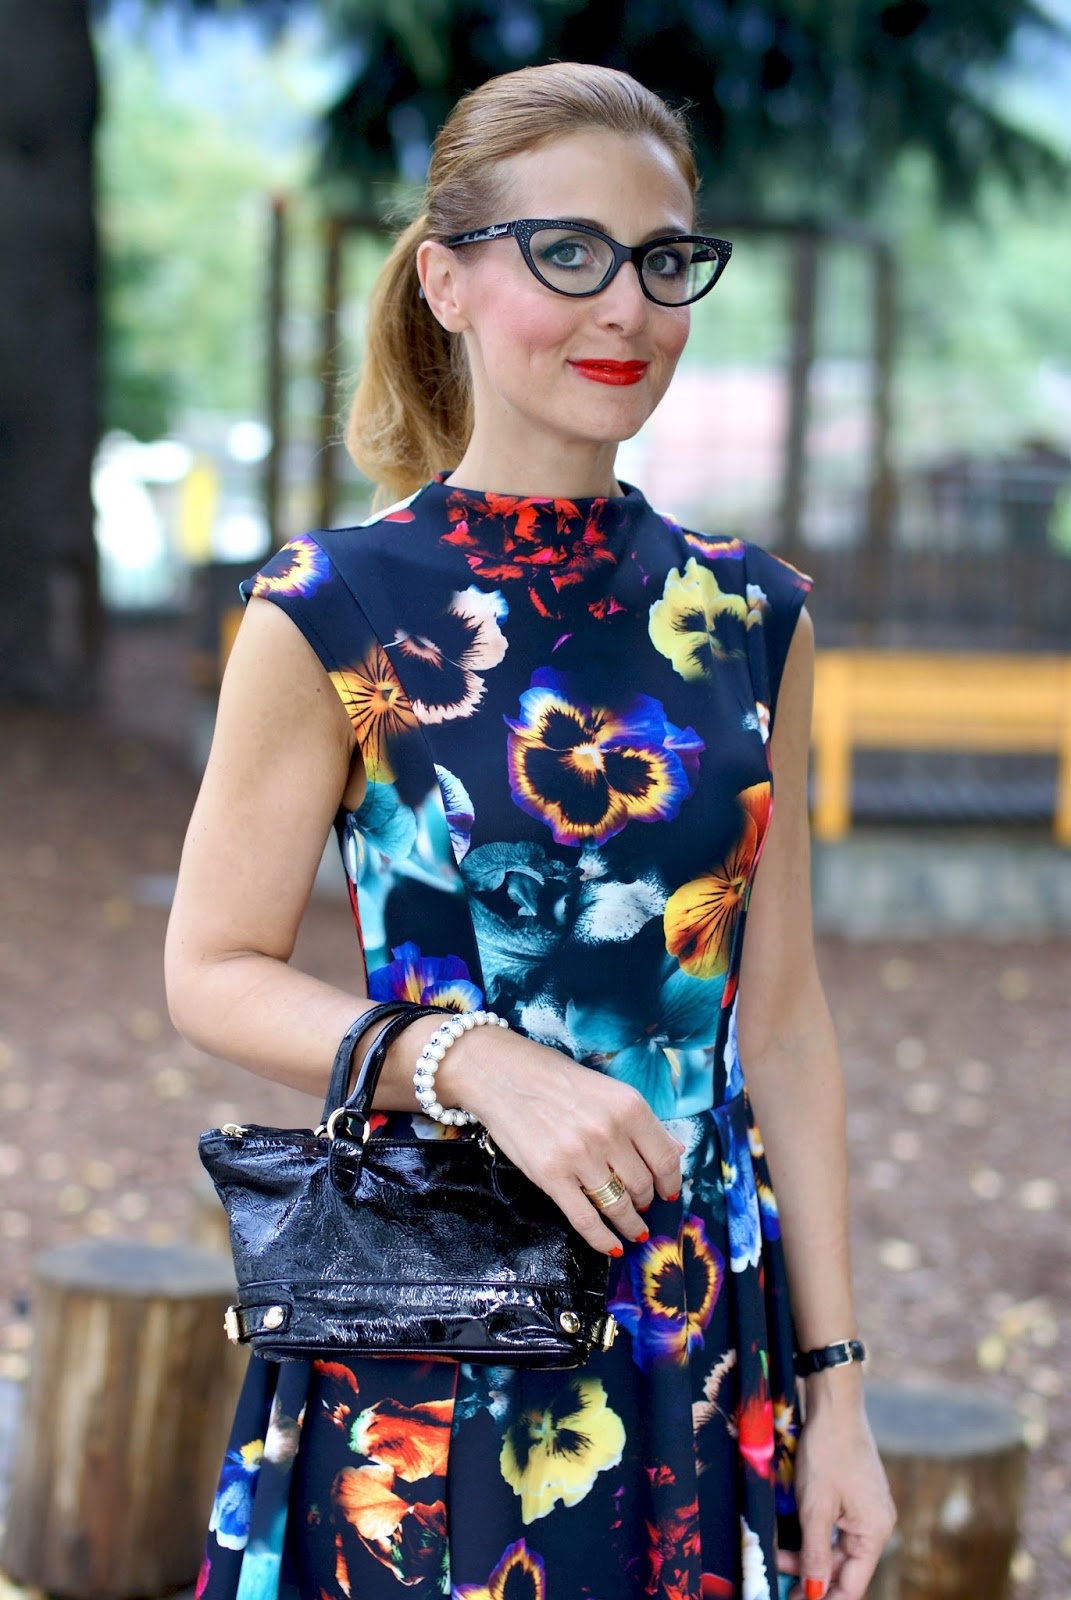 Cat eye prescription glasses, DSquared2 eyeglasses on Fashion and Cookies fashion blog, fashion blogger wearing eyeglasses